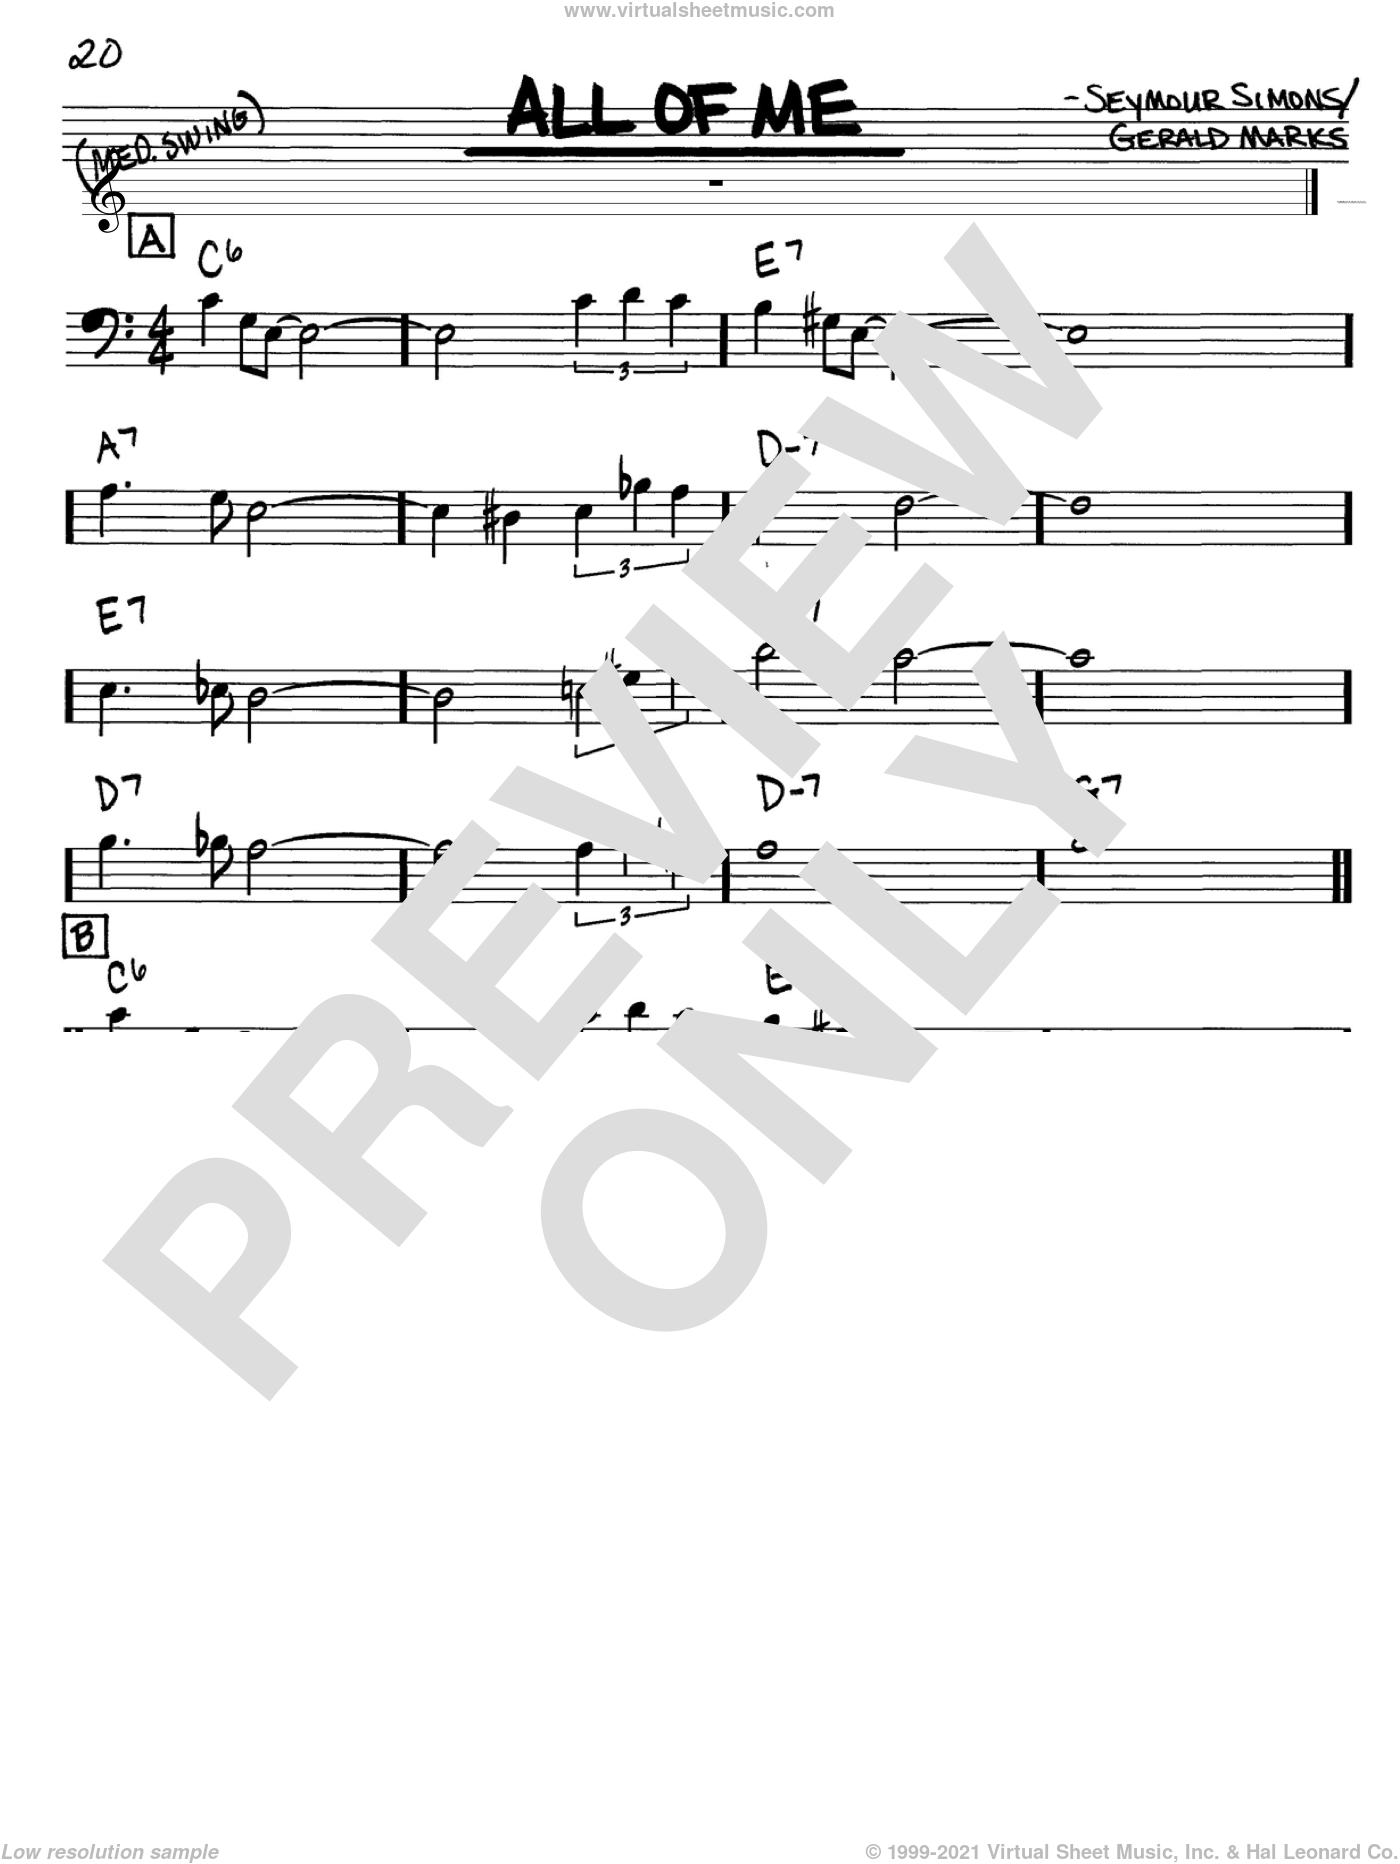 All Of Me sheet music for voice and other instruments (Bass Clef ) by Louis Armstrong, Frank Sinatra, Willie Nelson, Gerald Marks and Seymour Simons, intermediate voice. Score Image Preview.